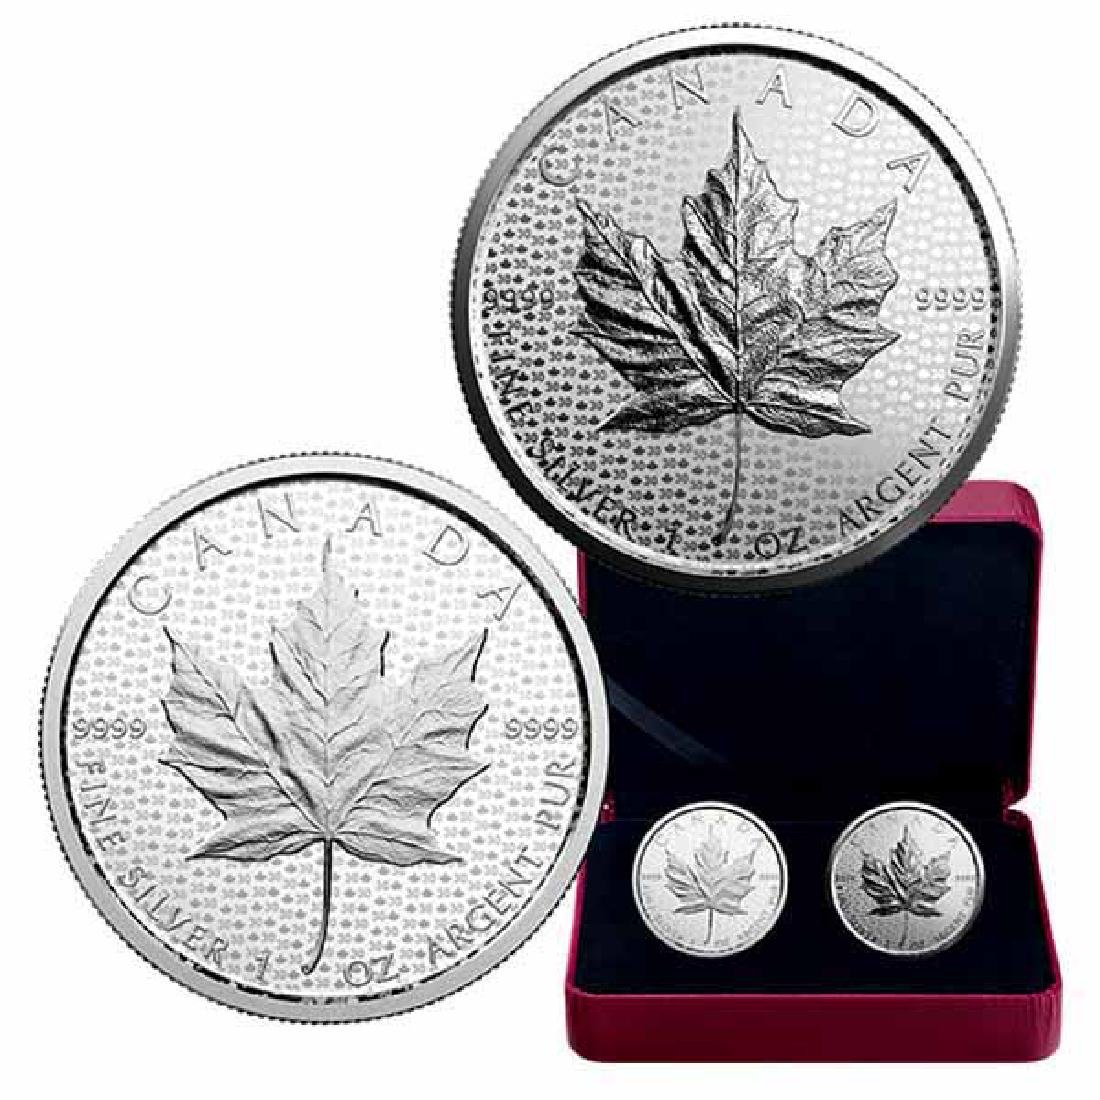 Canada 2018 Silver Maple Leaf 2 Coin Proof Set 30th Ann